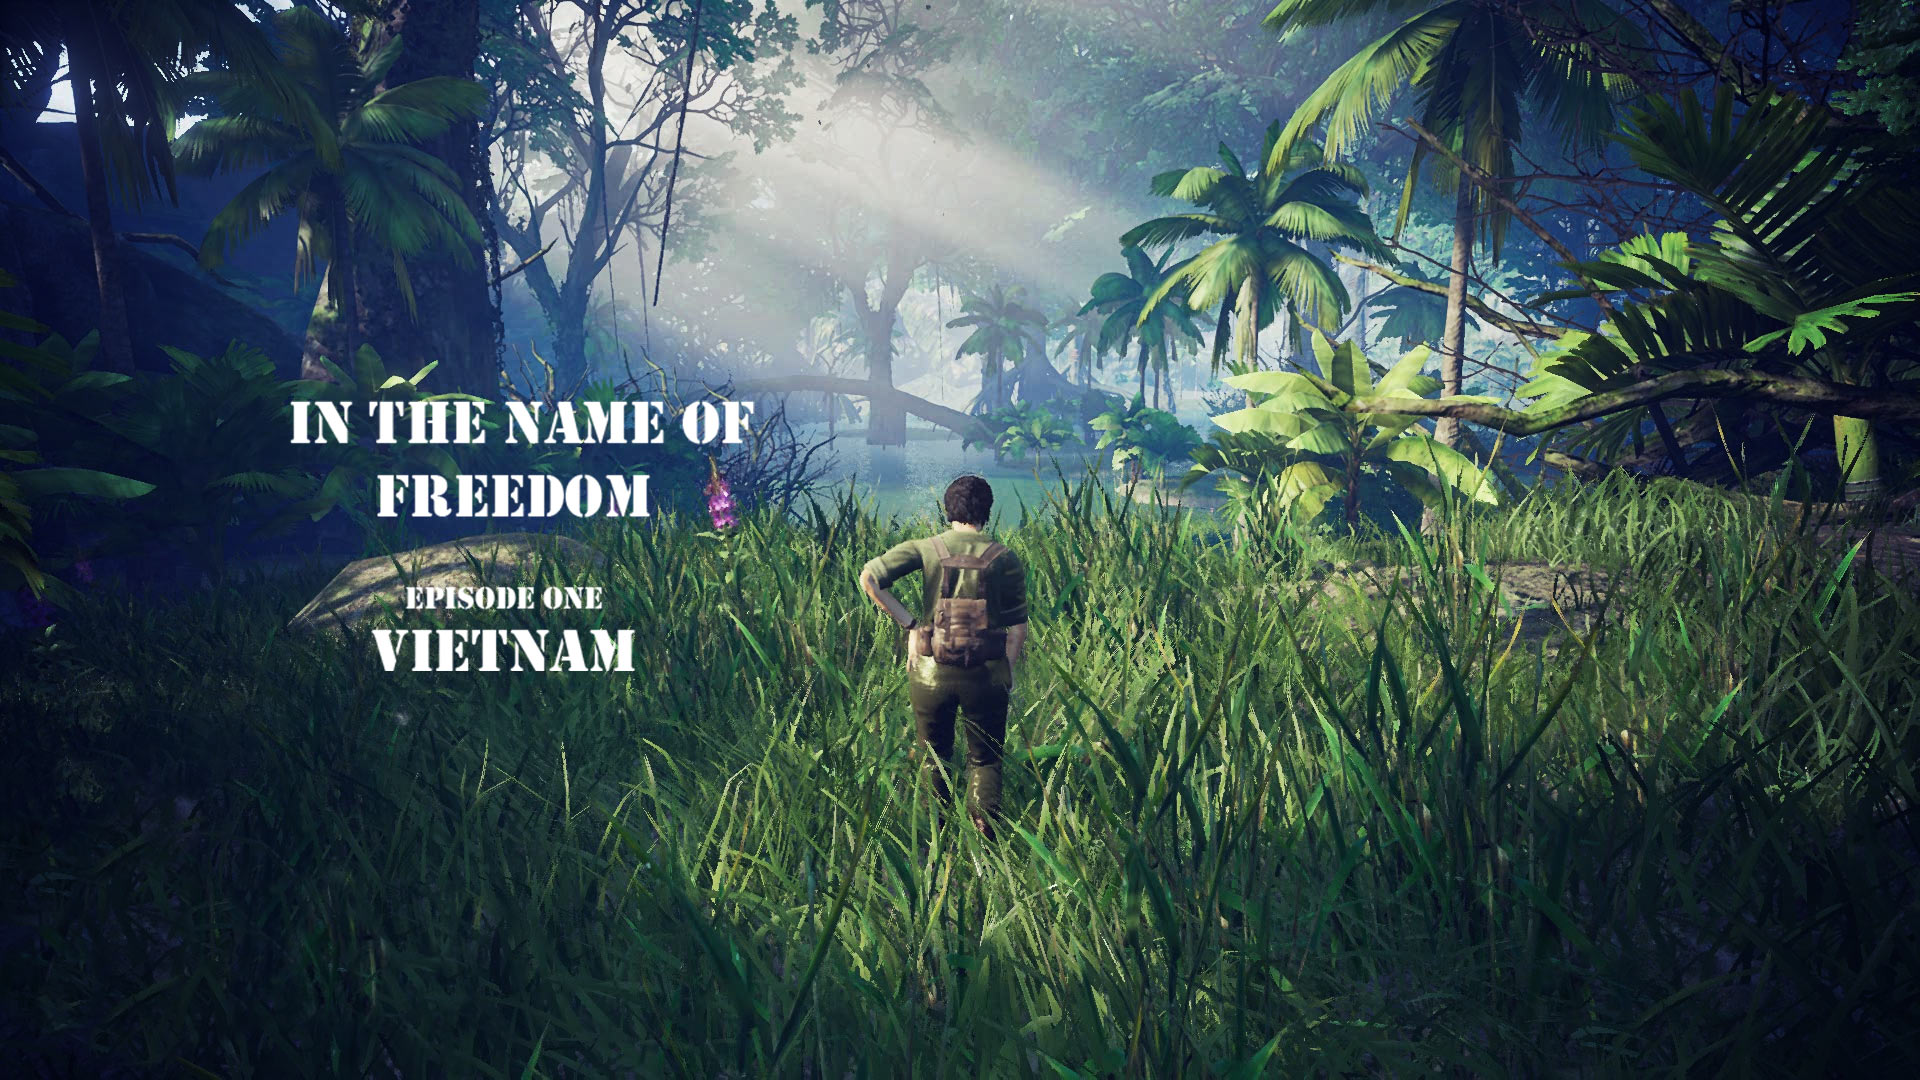 In The Name Of Freedom Episode 1: Vietnam